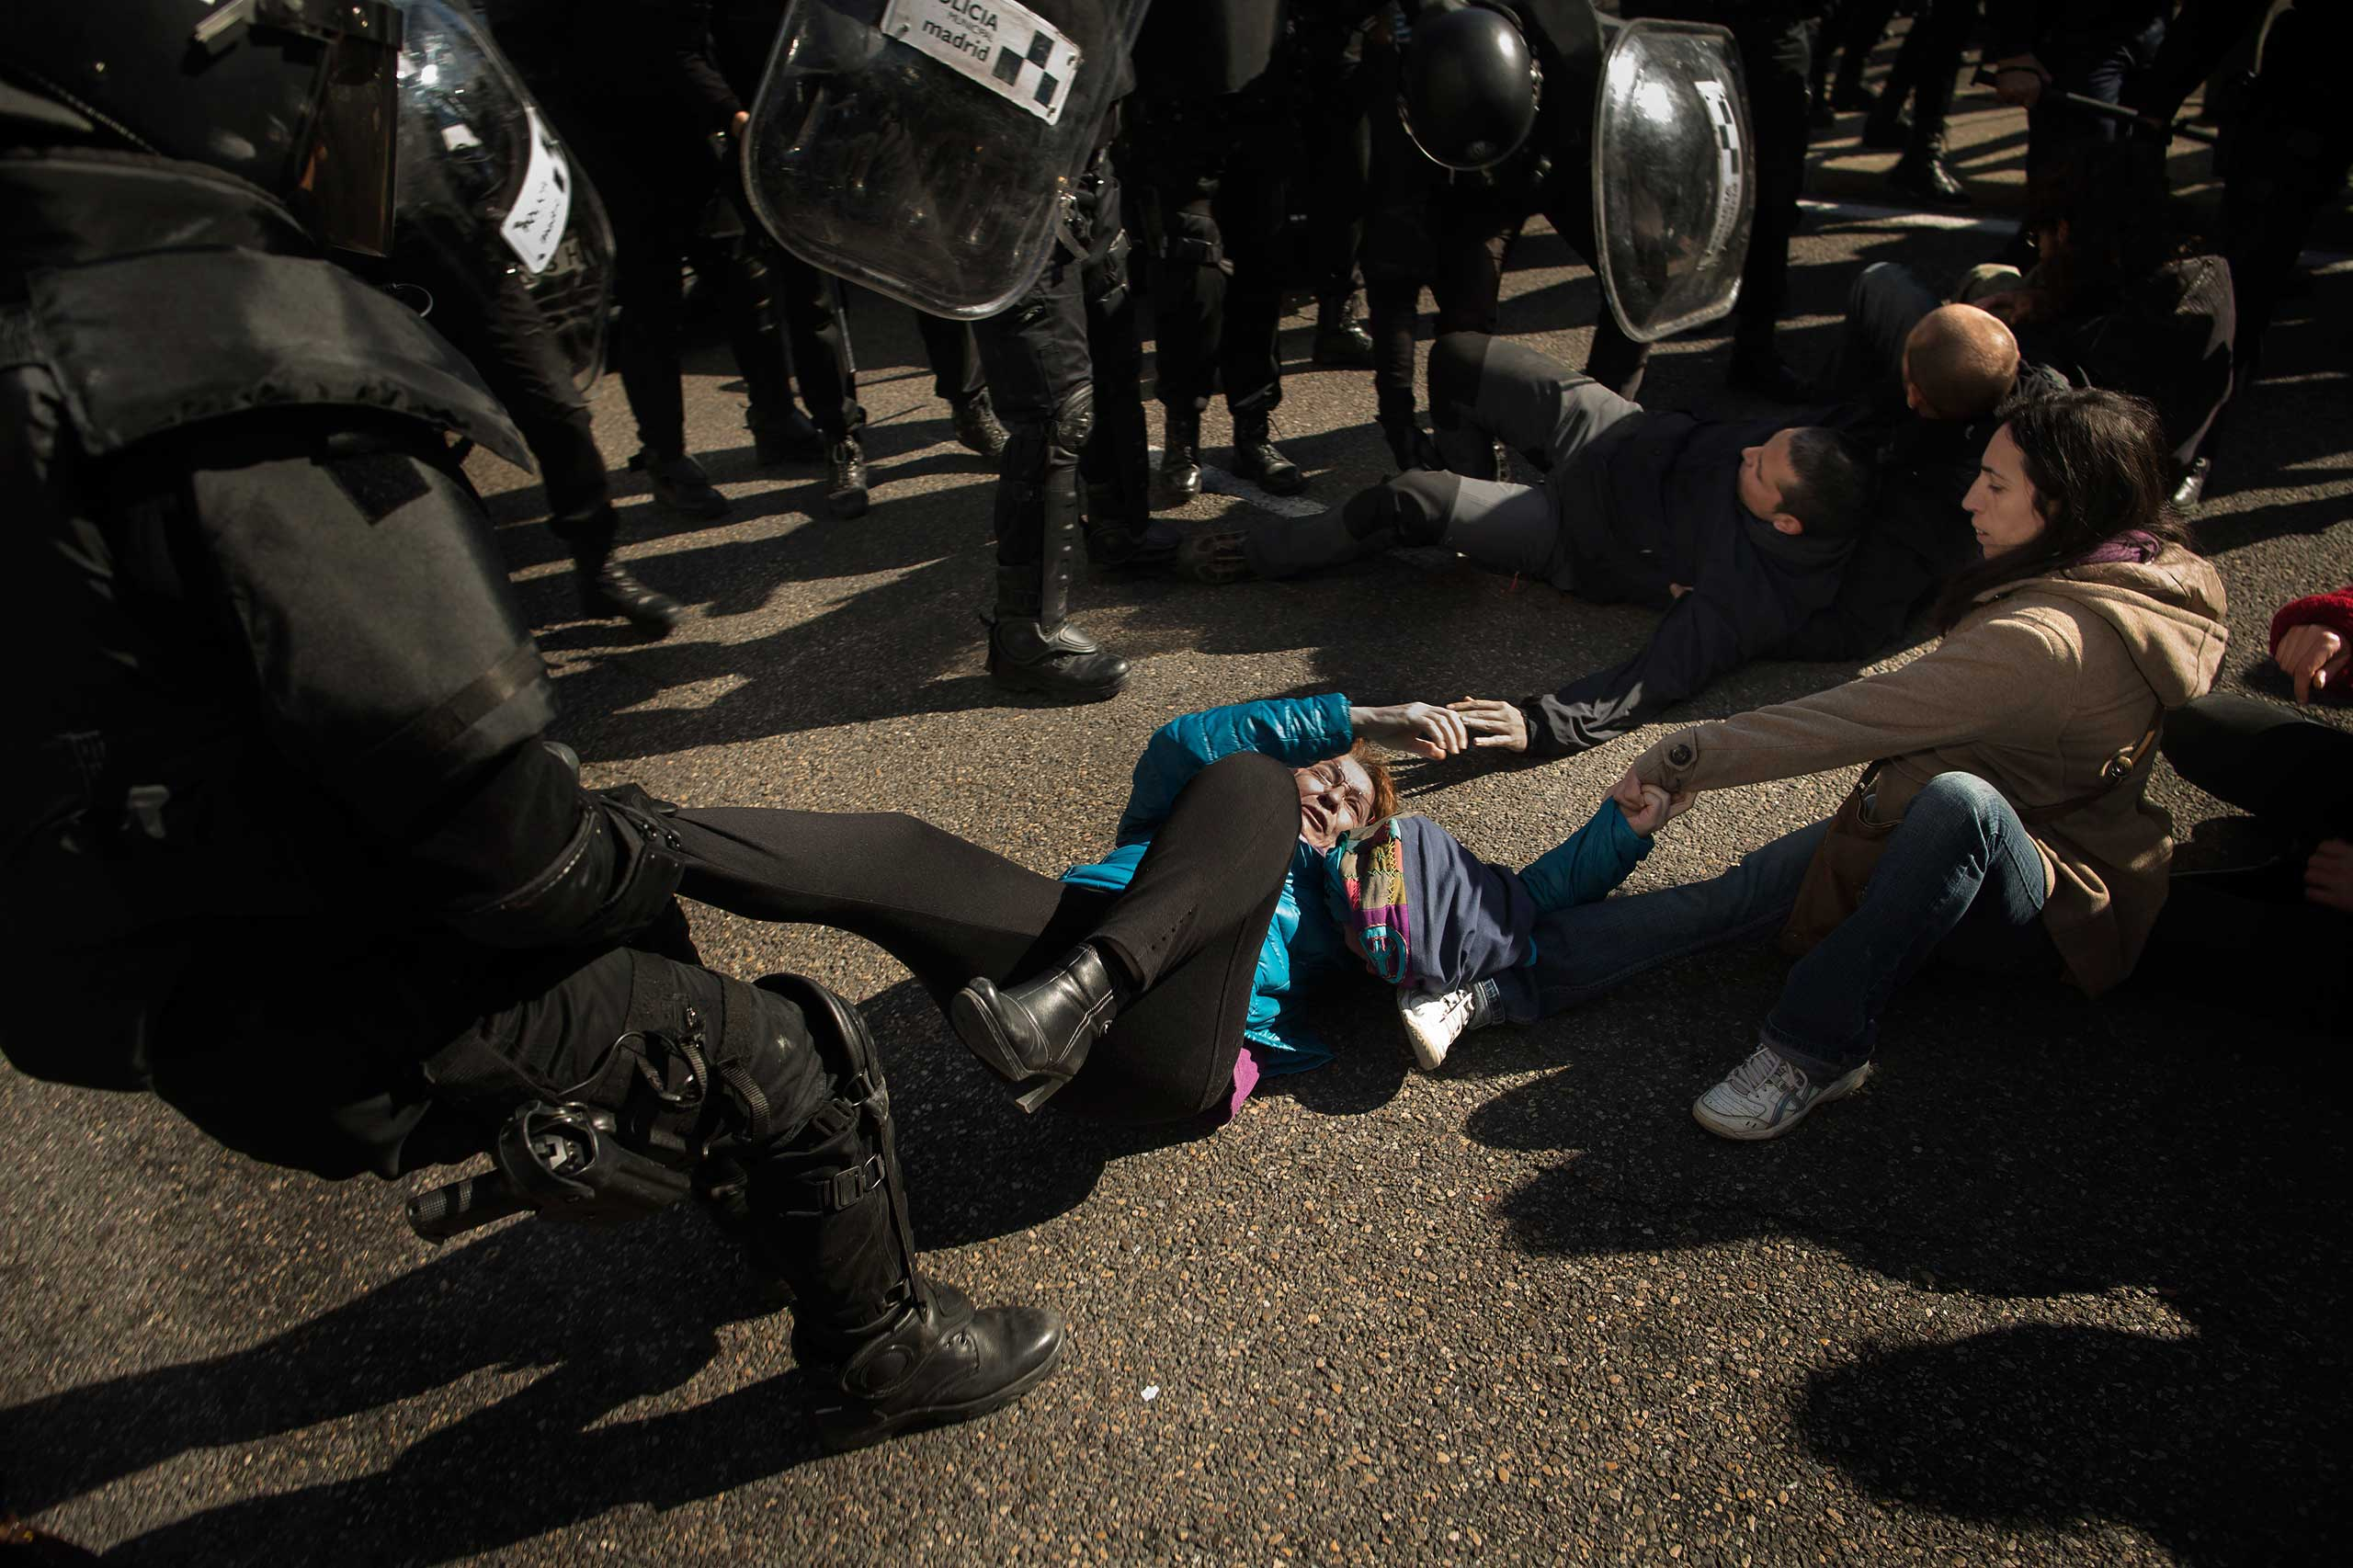 Riot Police remove housing rights activists as they try to stop Luisa Gracia Gonzalez and her family's eviction and the demolition of their house by a forced expropriation in Madrid. Feb. 2015.